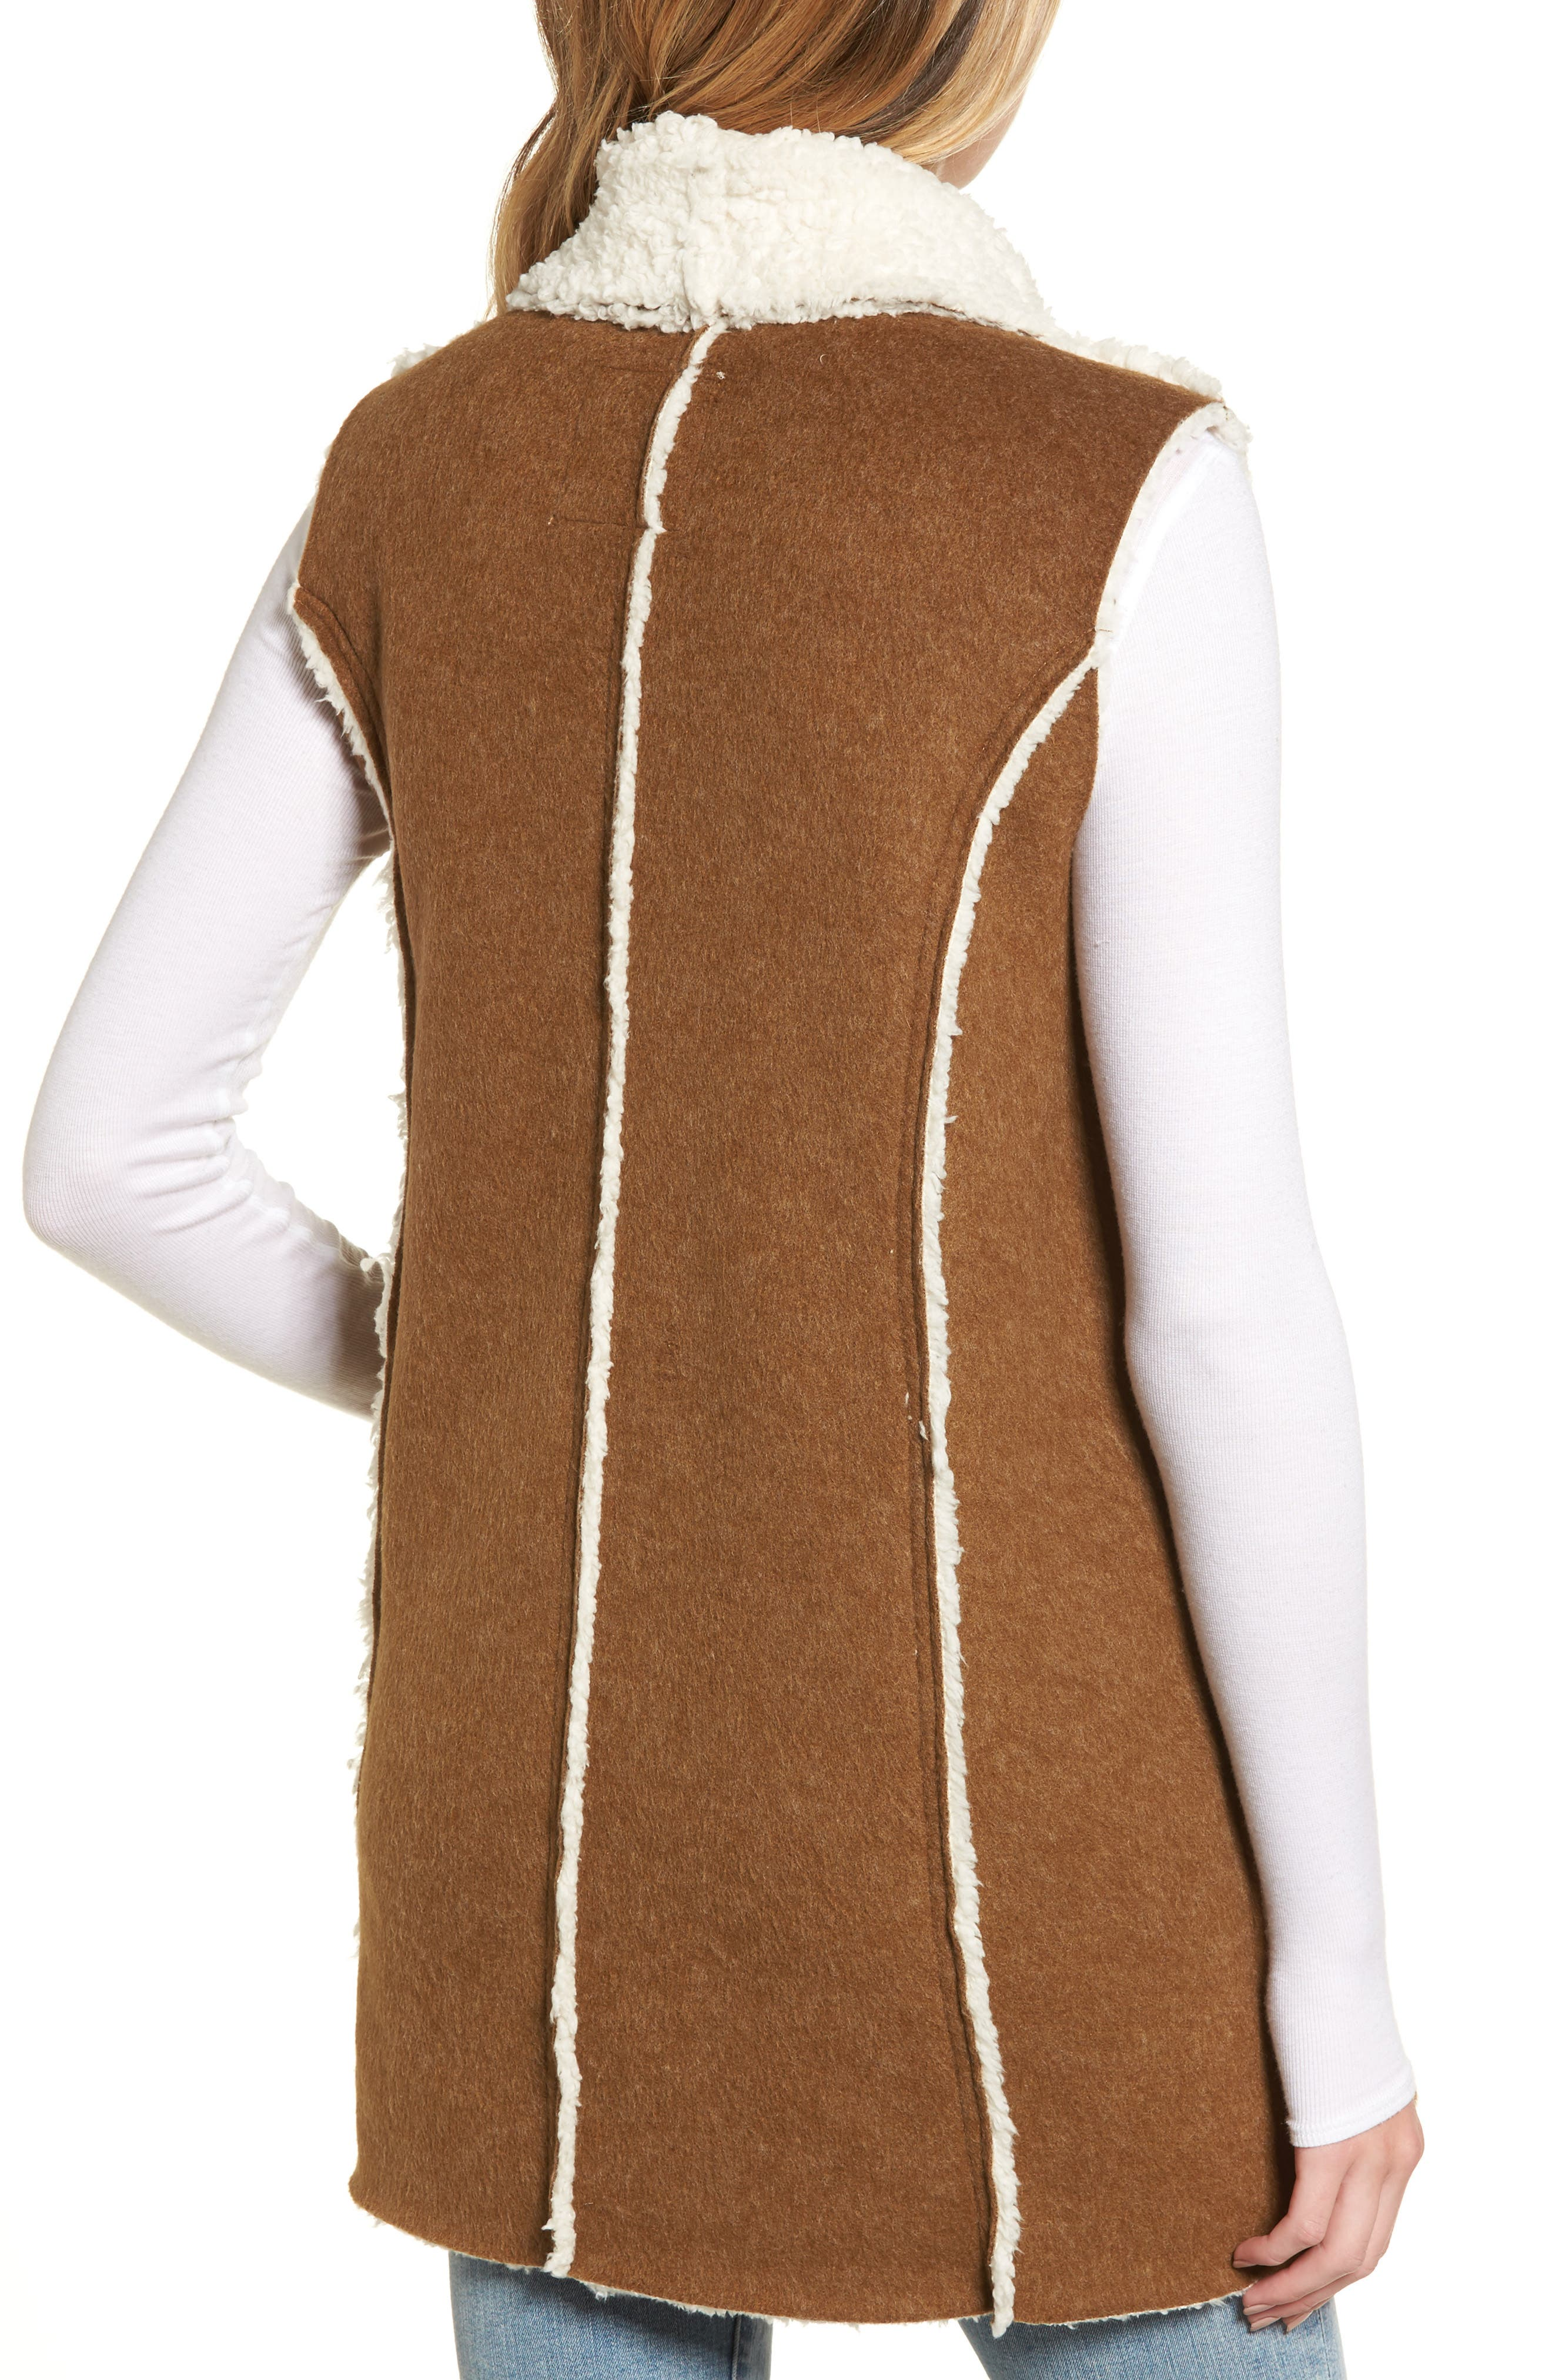 Flannel Faux Shearling Vest,                             Alternate thumbnail 2, color,